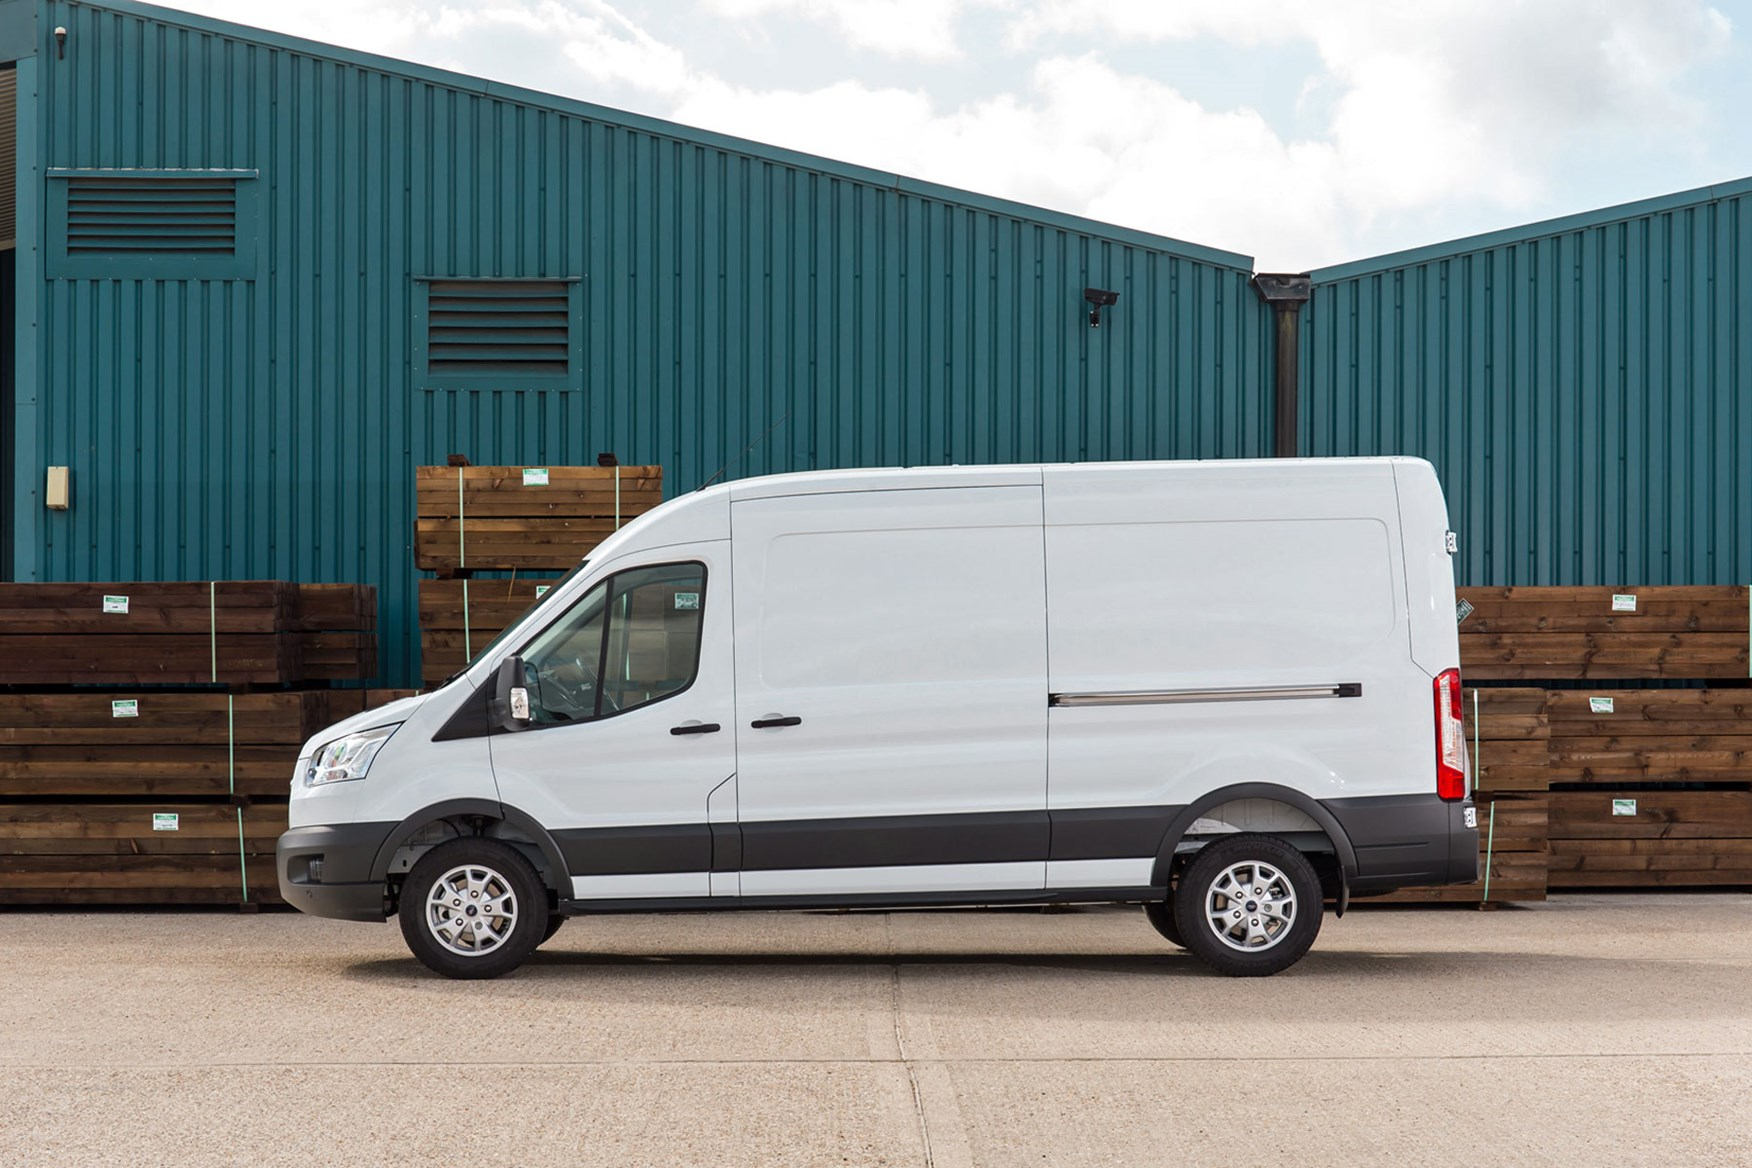 Ford Transit Van Dimensions Capacity Payload Volume Towing Parkers